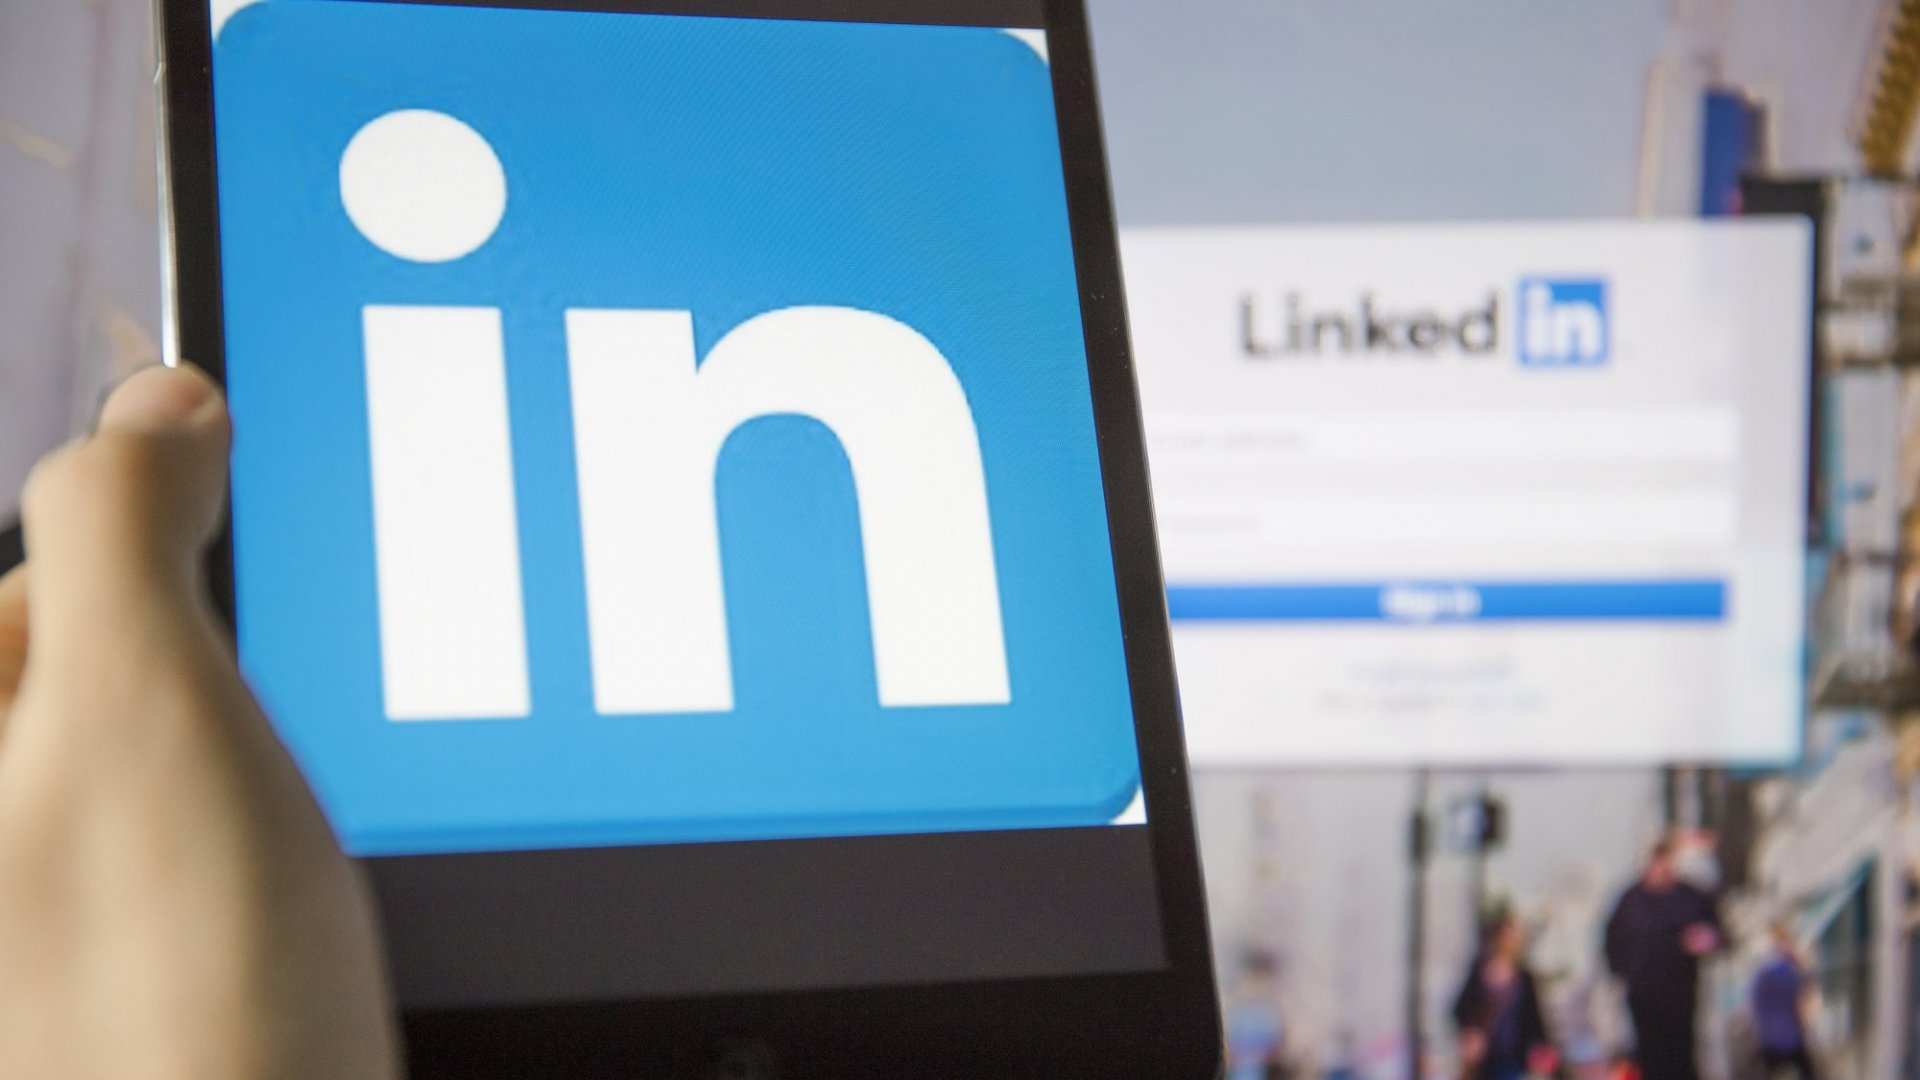 These 5 Invaluable Skills Will Make You Immediately Marketable, Says New LinkedIn Report